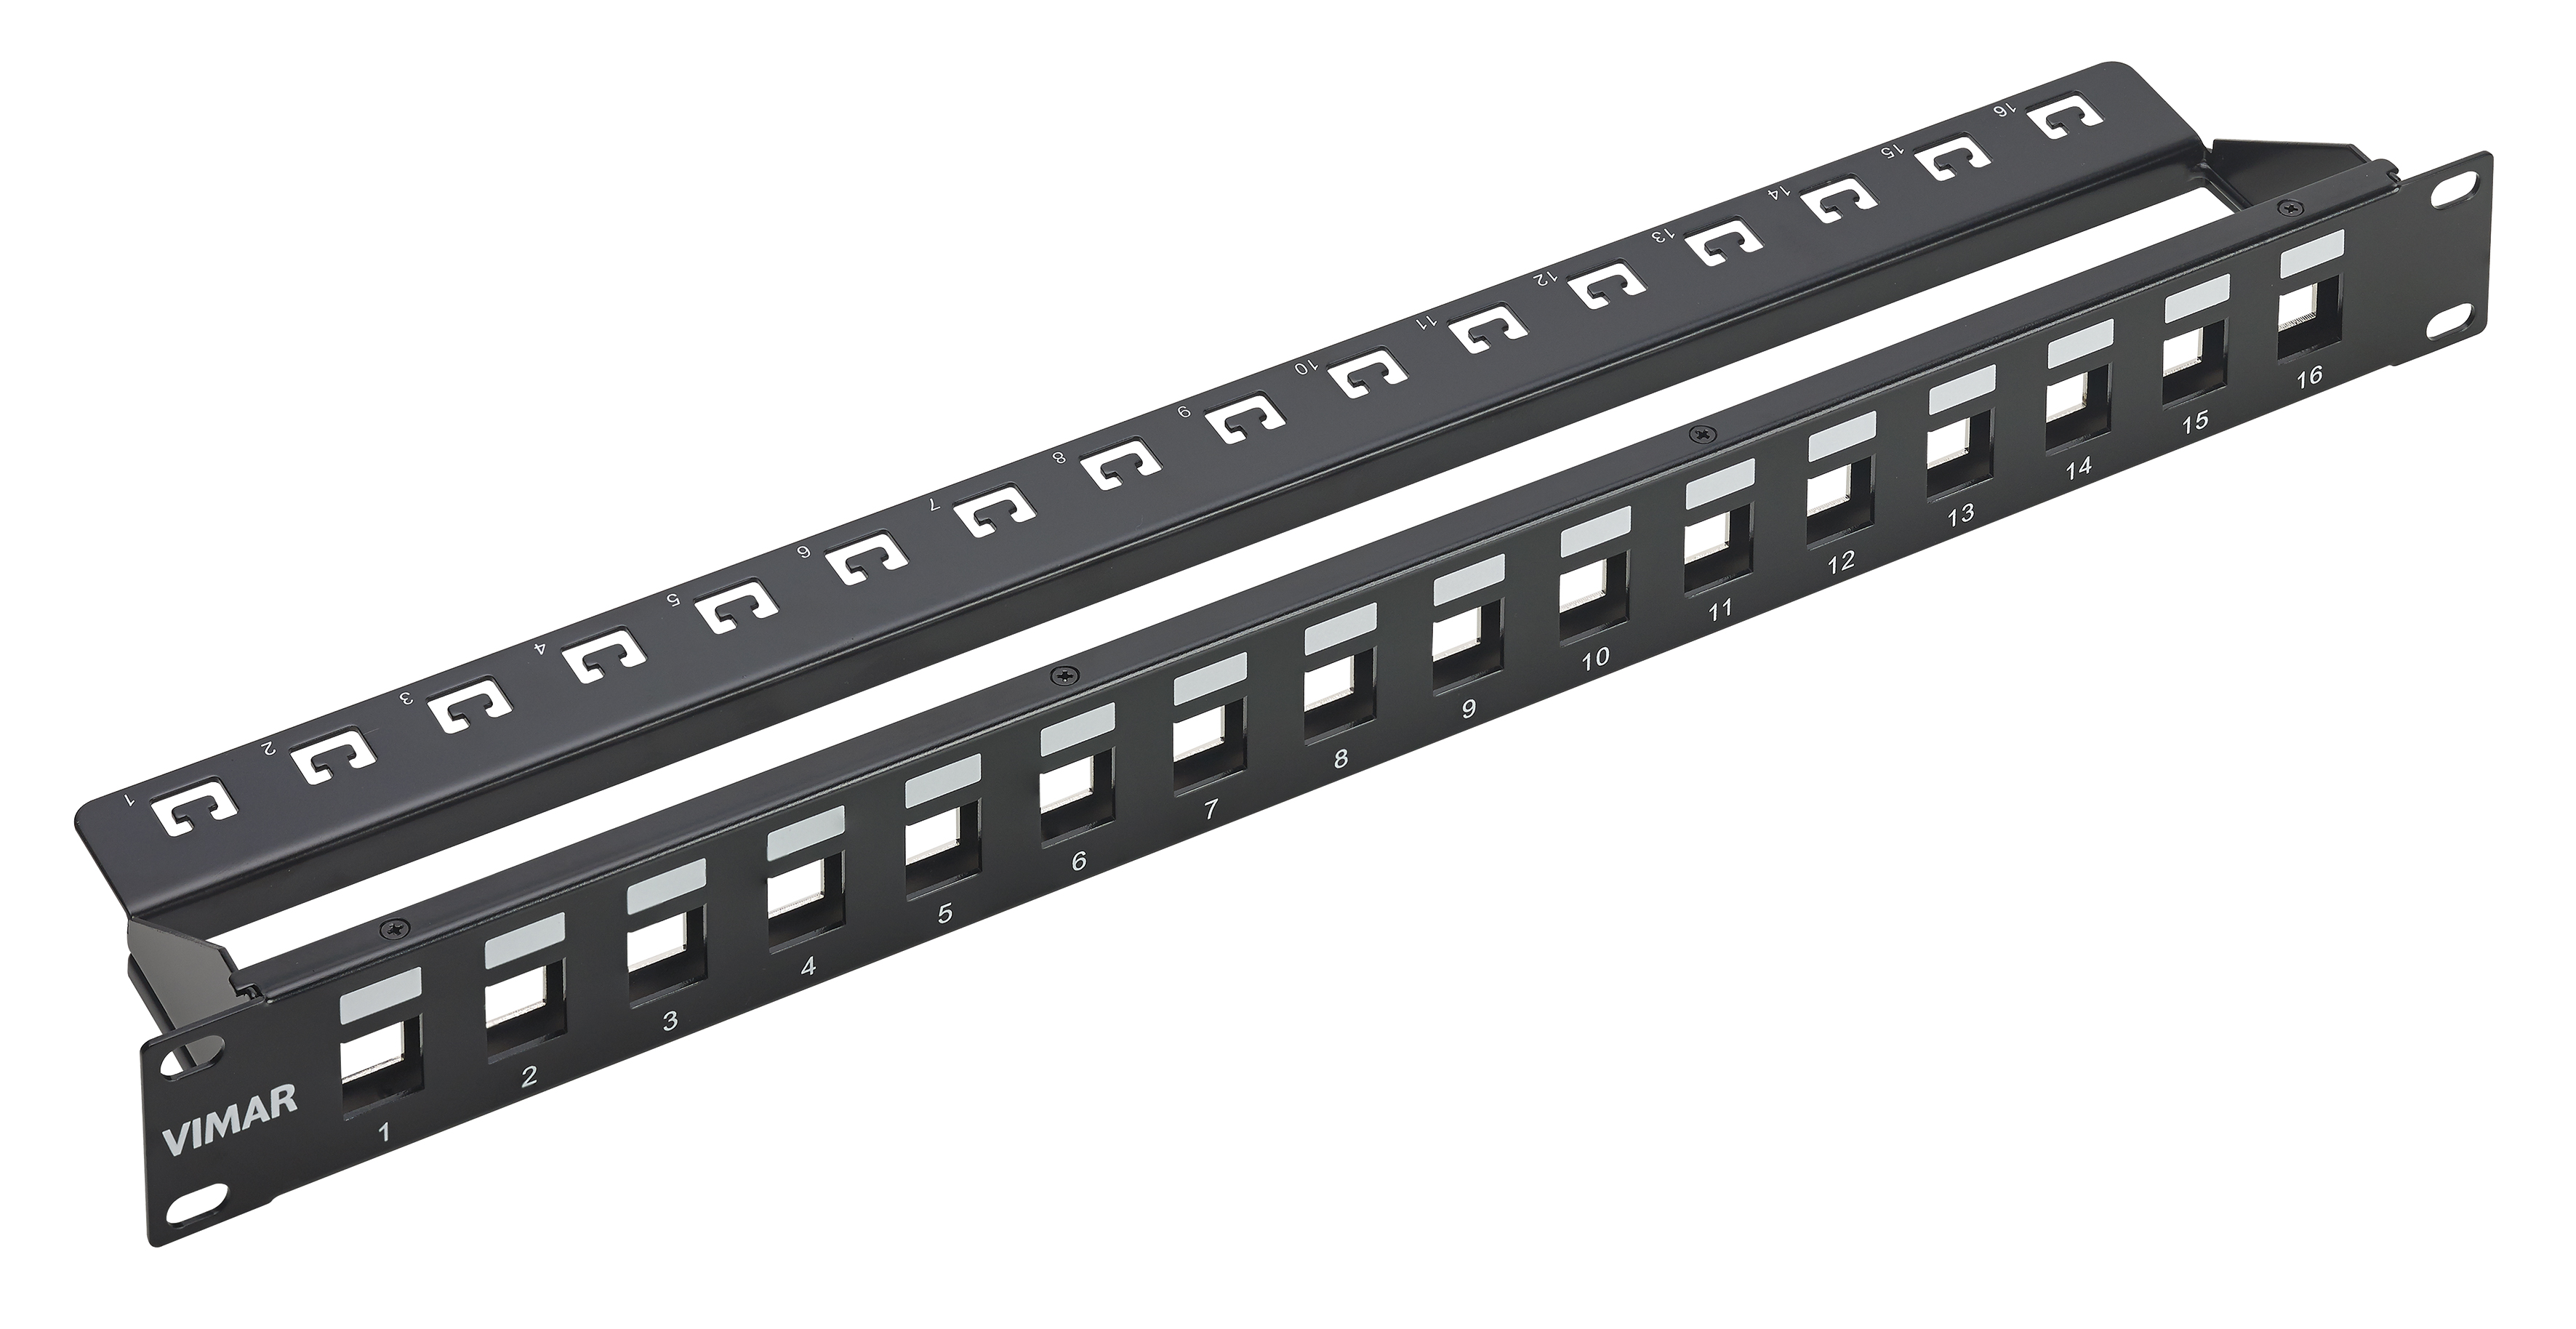 Patch Panels Panel 16 Empty Ports 1u 03024e Net Safe For Of Rack System On Wiring House Ethernet E 3d